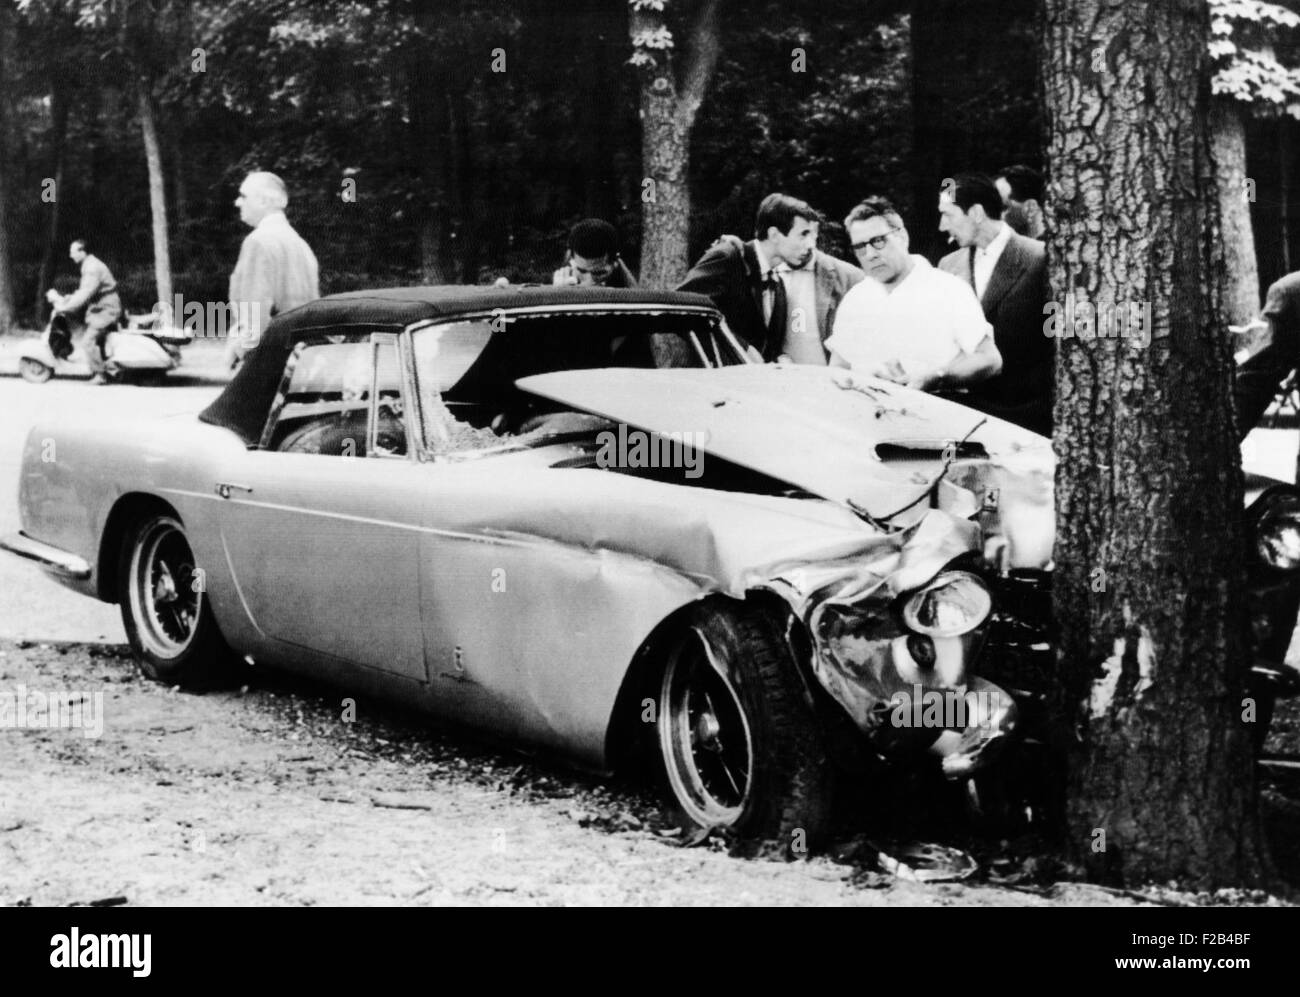 The mangled Ferrari in which Porfirio Rubirosa died in an early morning auto accident. The 56 year old playboy and - Stock Image